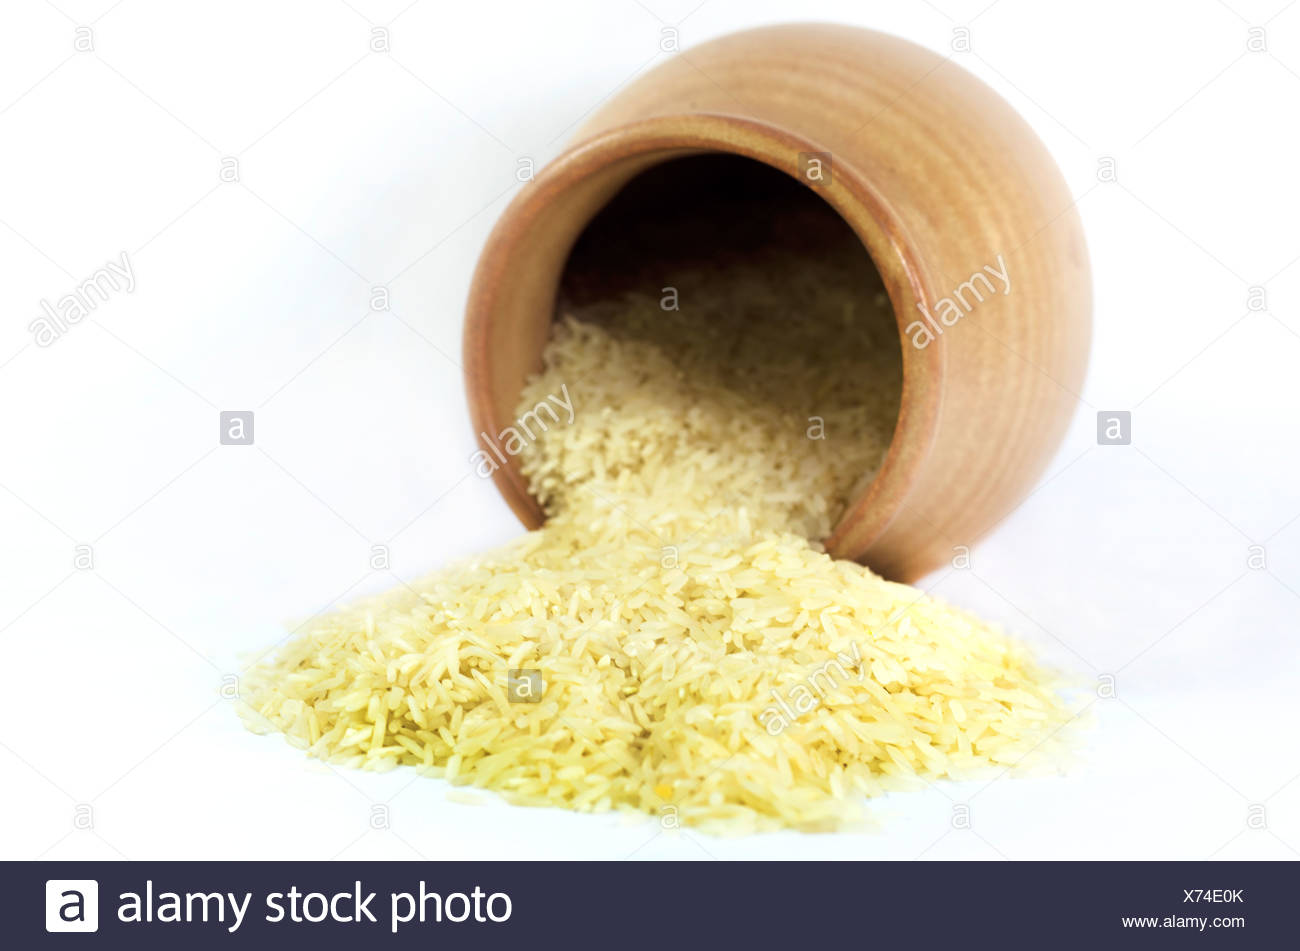 rice  in an earthenware pot. Stock Photo